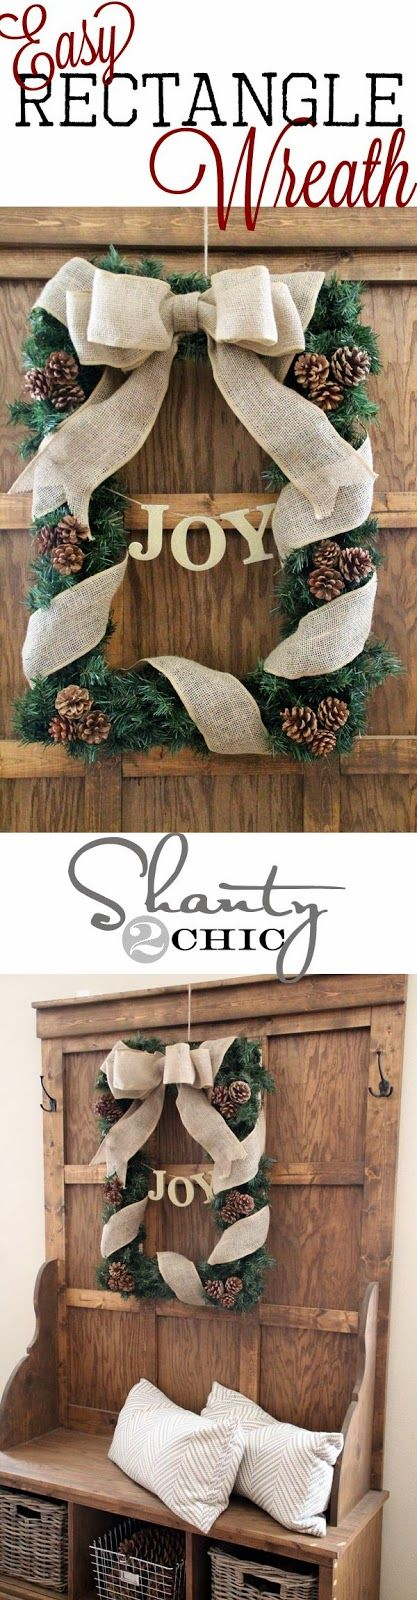 Rustic Picture Frame Christmas Wreath.